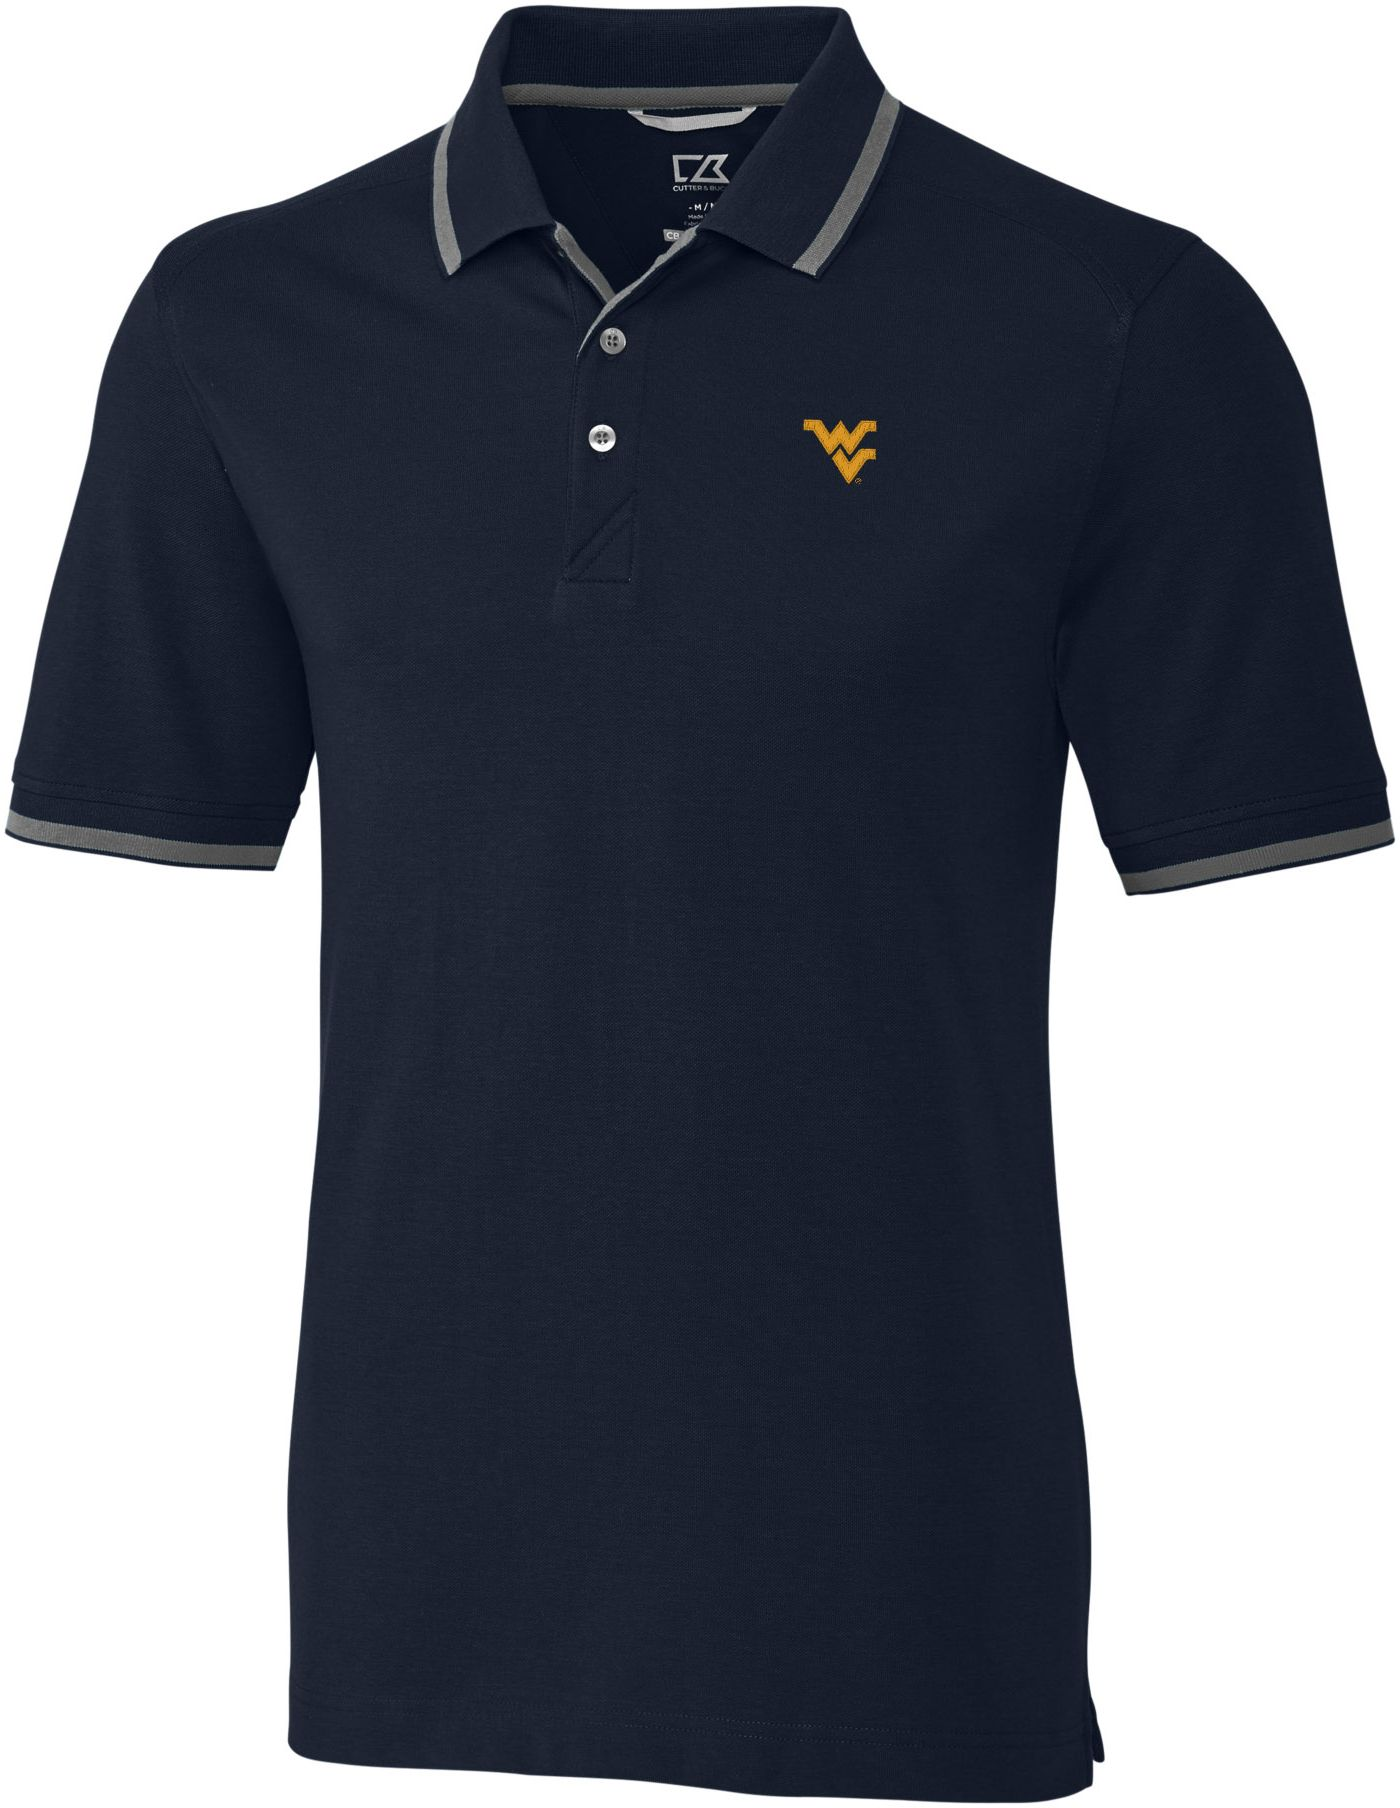 Cutter & Buck Men's West Virginia Mountaineers Navy Advantage Tipped Polo